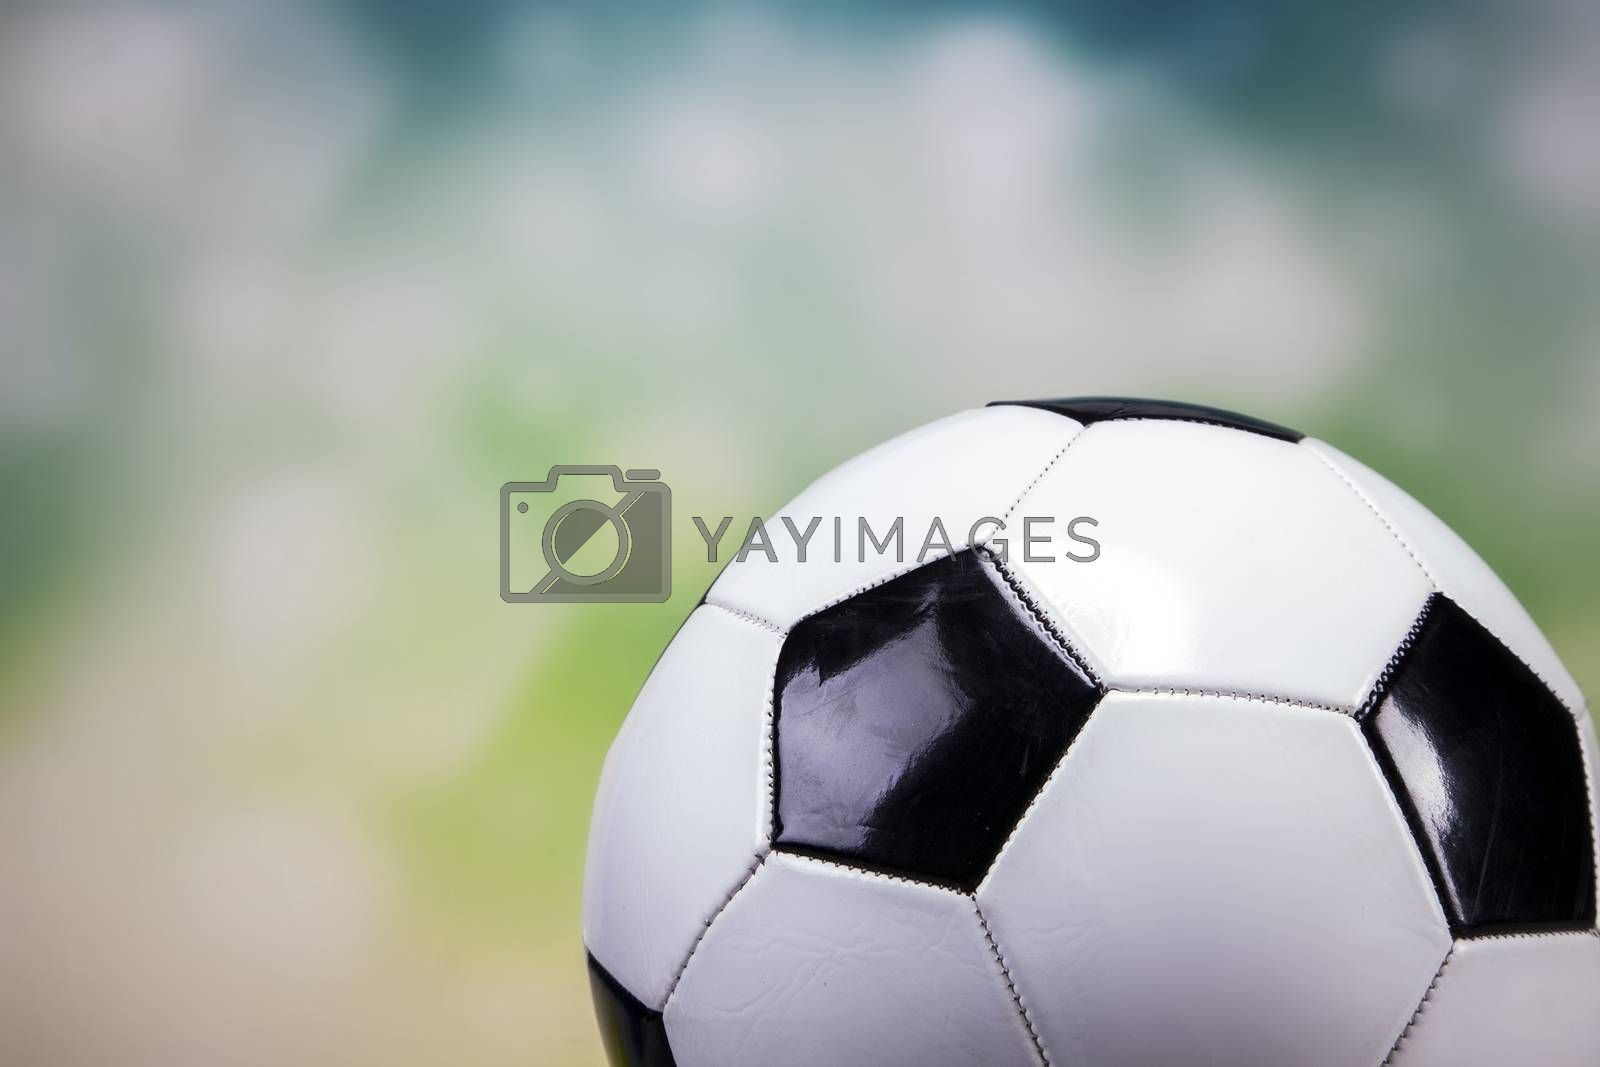 Royalty free image of Football on colorful background by fikmik